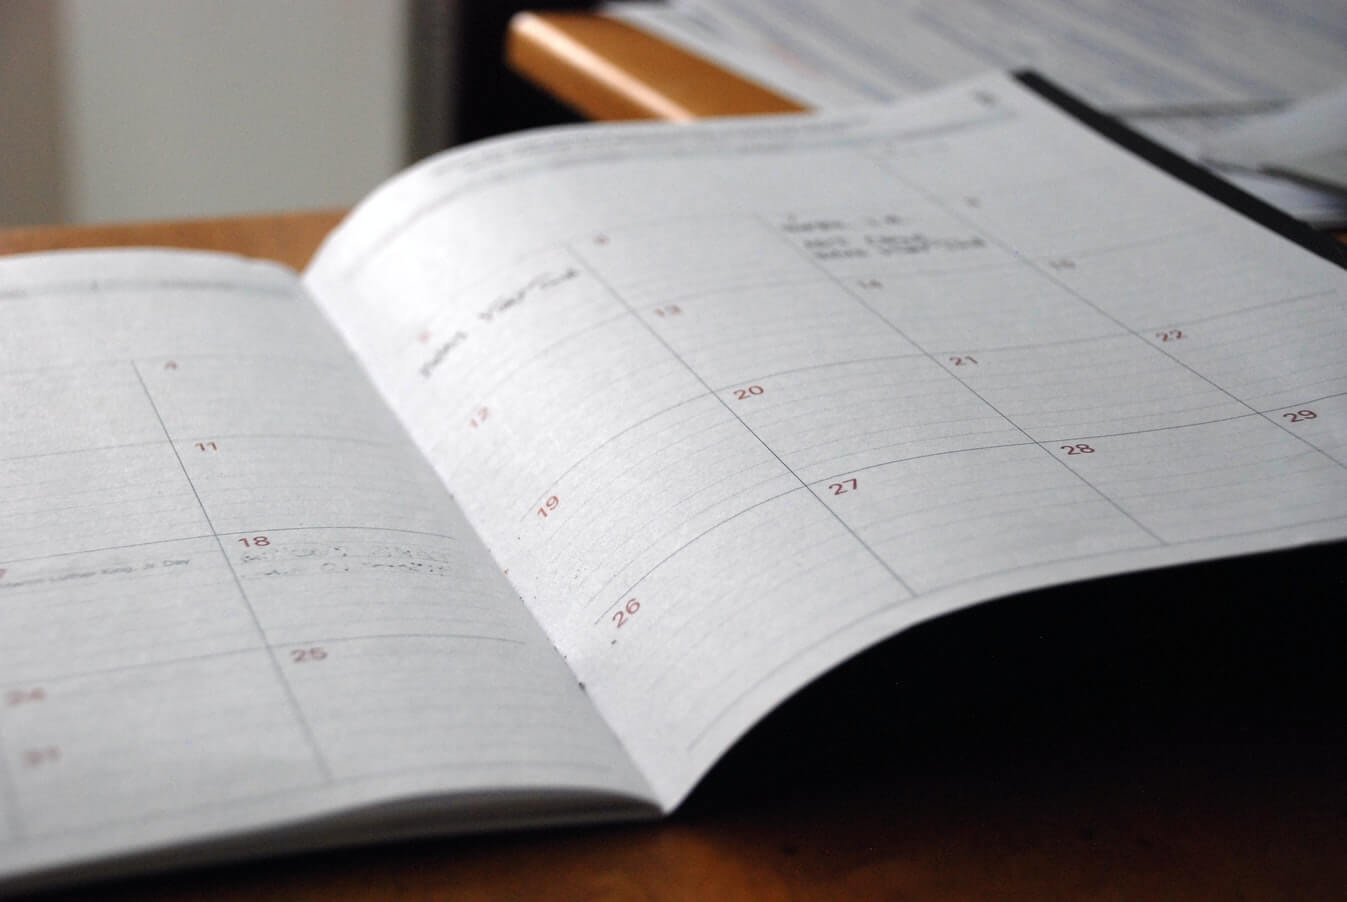 A monthly planner. Many individuals still like to plan their days as they enter retirement